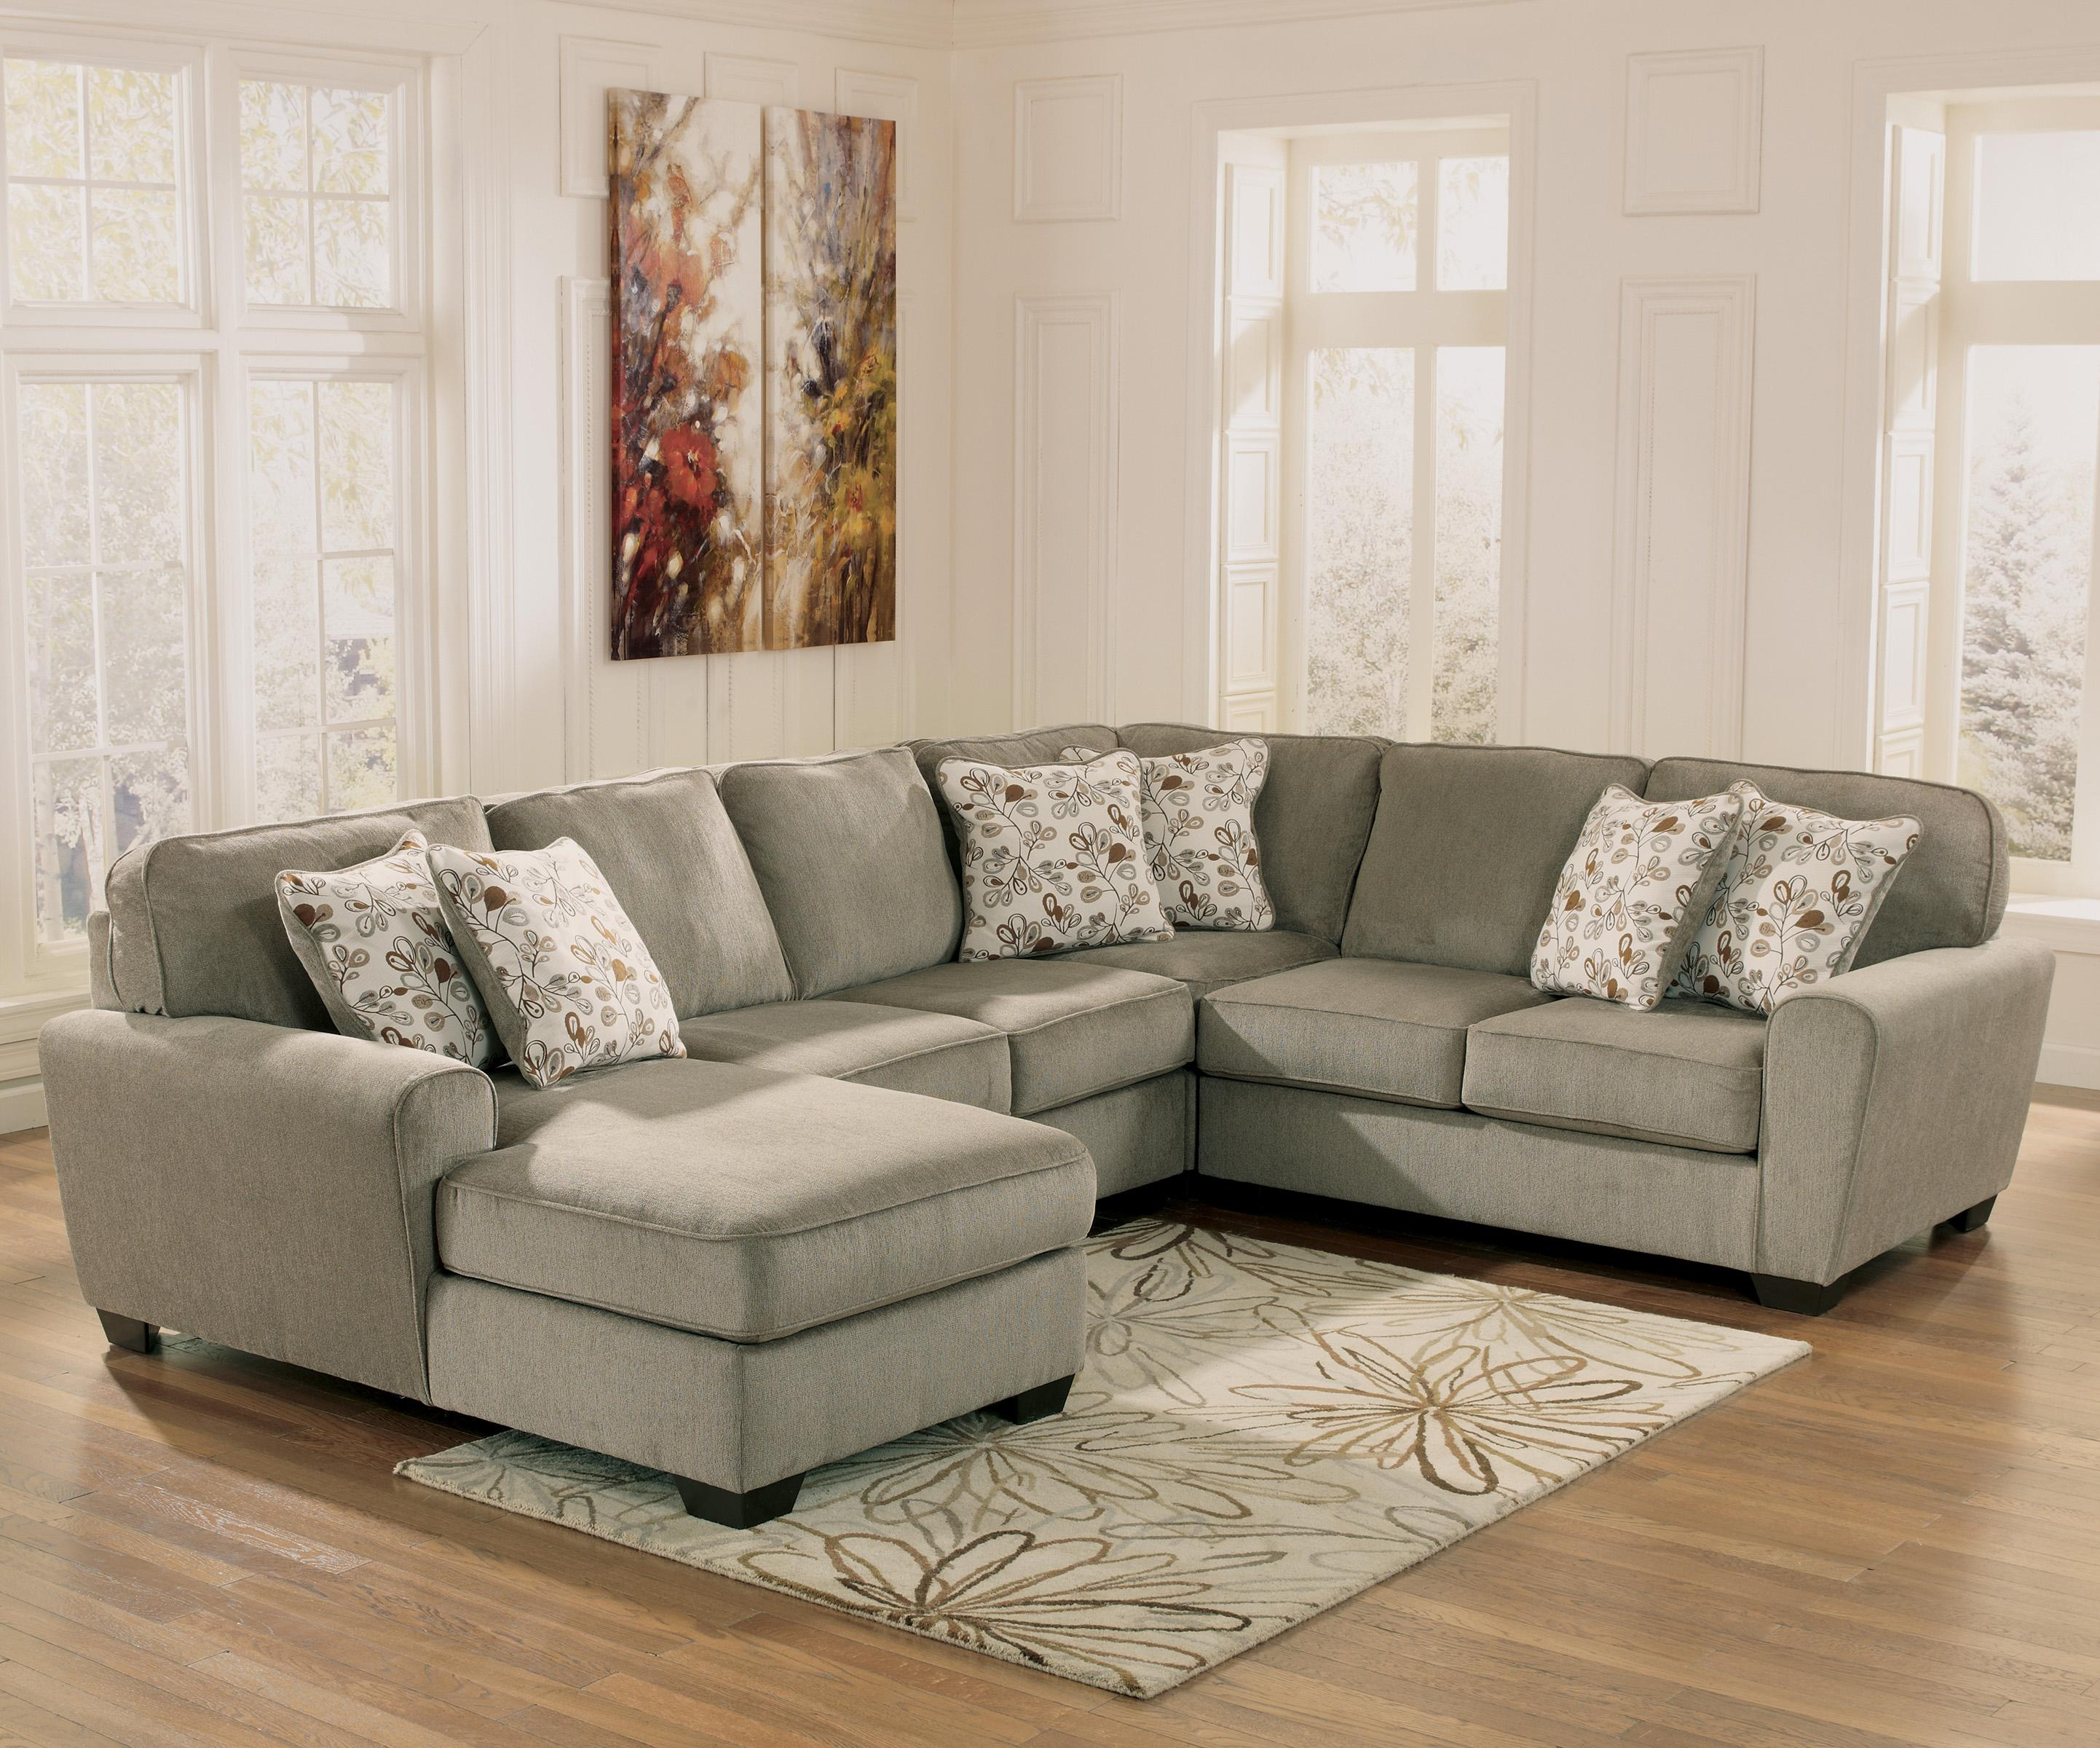 ashley cohes sofa chaise everyday beds uk patina 4 piece small sectional with left rotmans